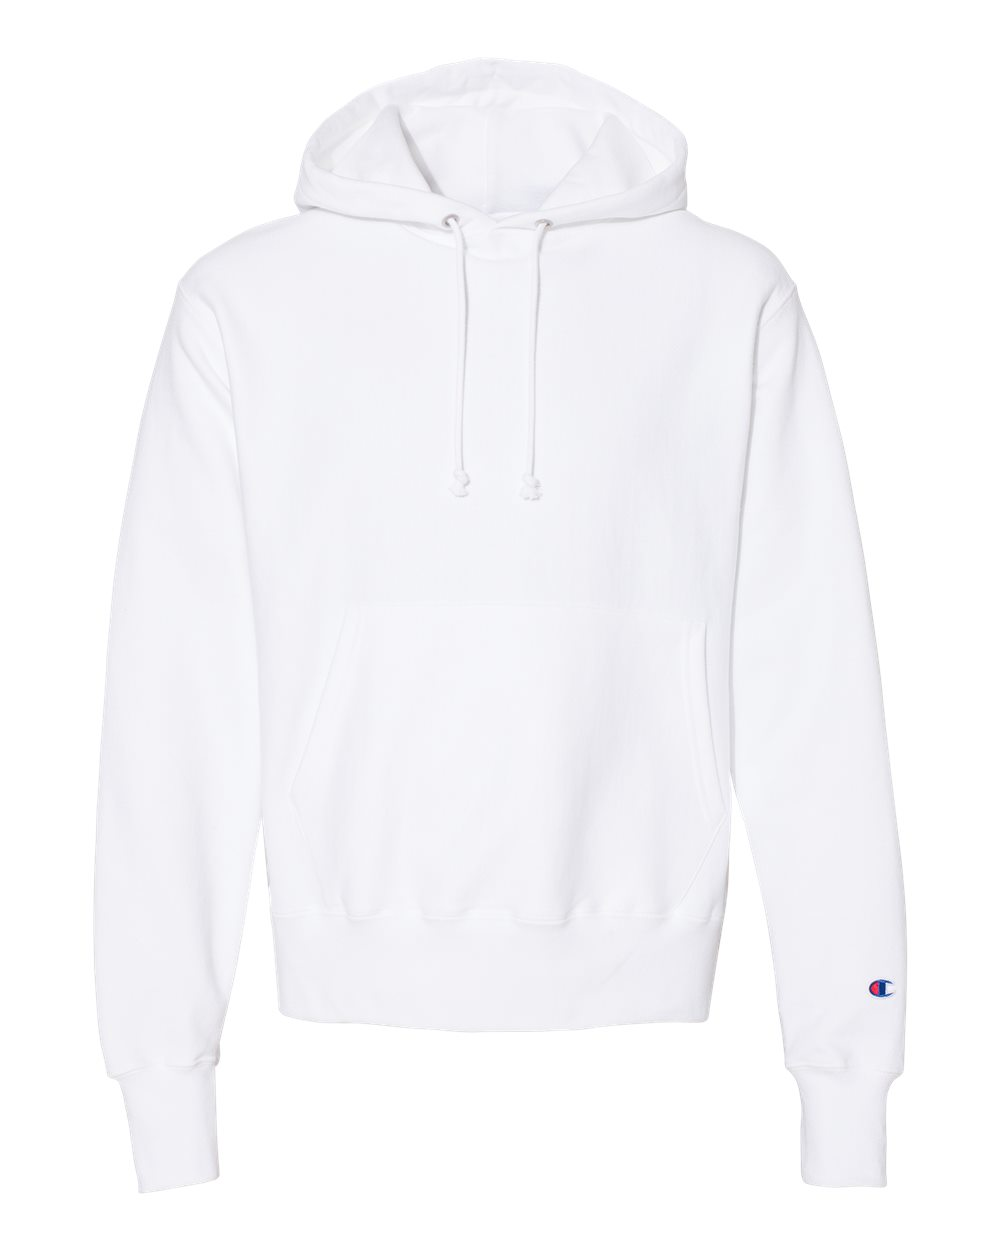 Champion-Mens-Reverse-Weave-Hooded-Pullover-Sweatshirt-S101-up-to-3XL thumbnail 48